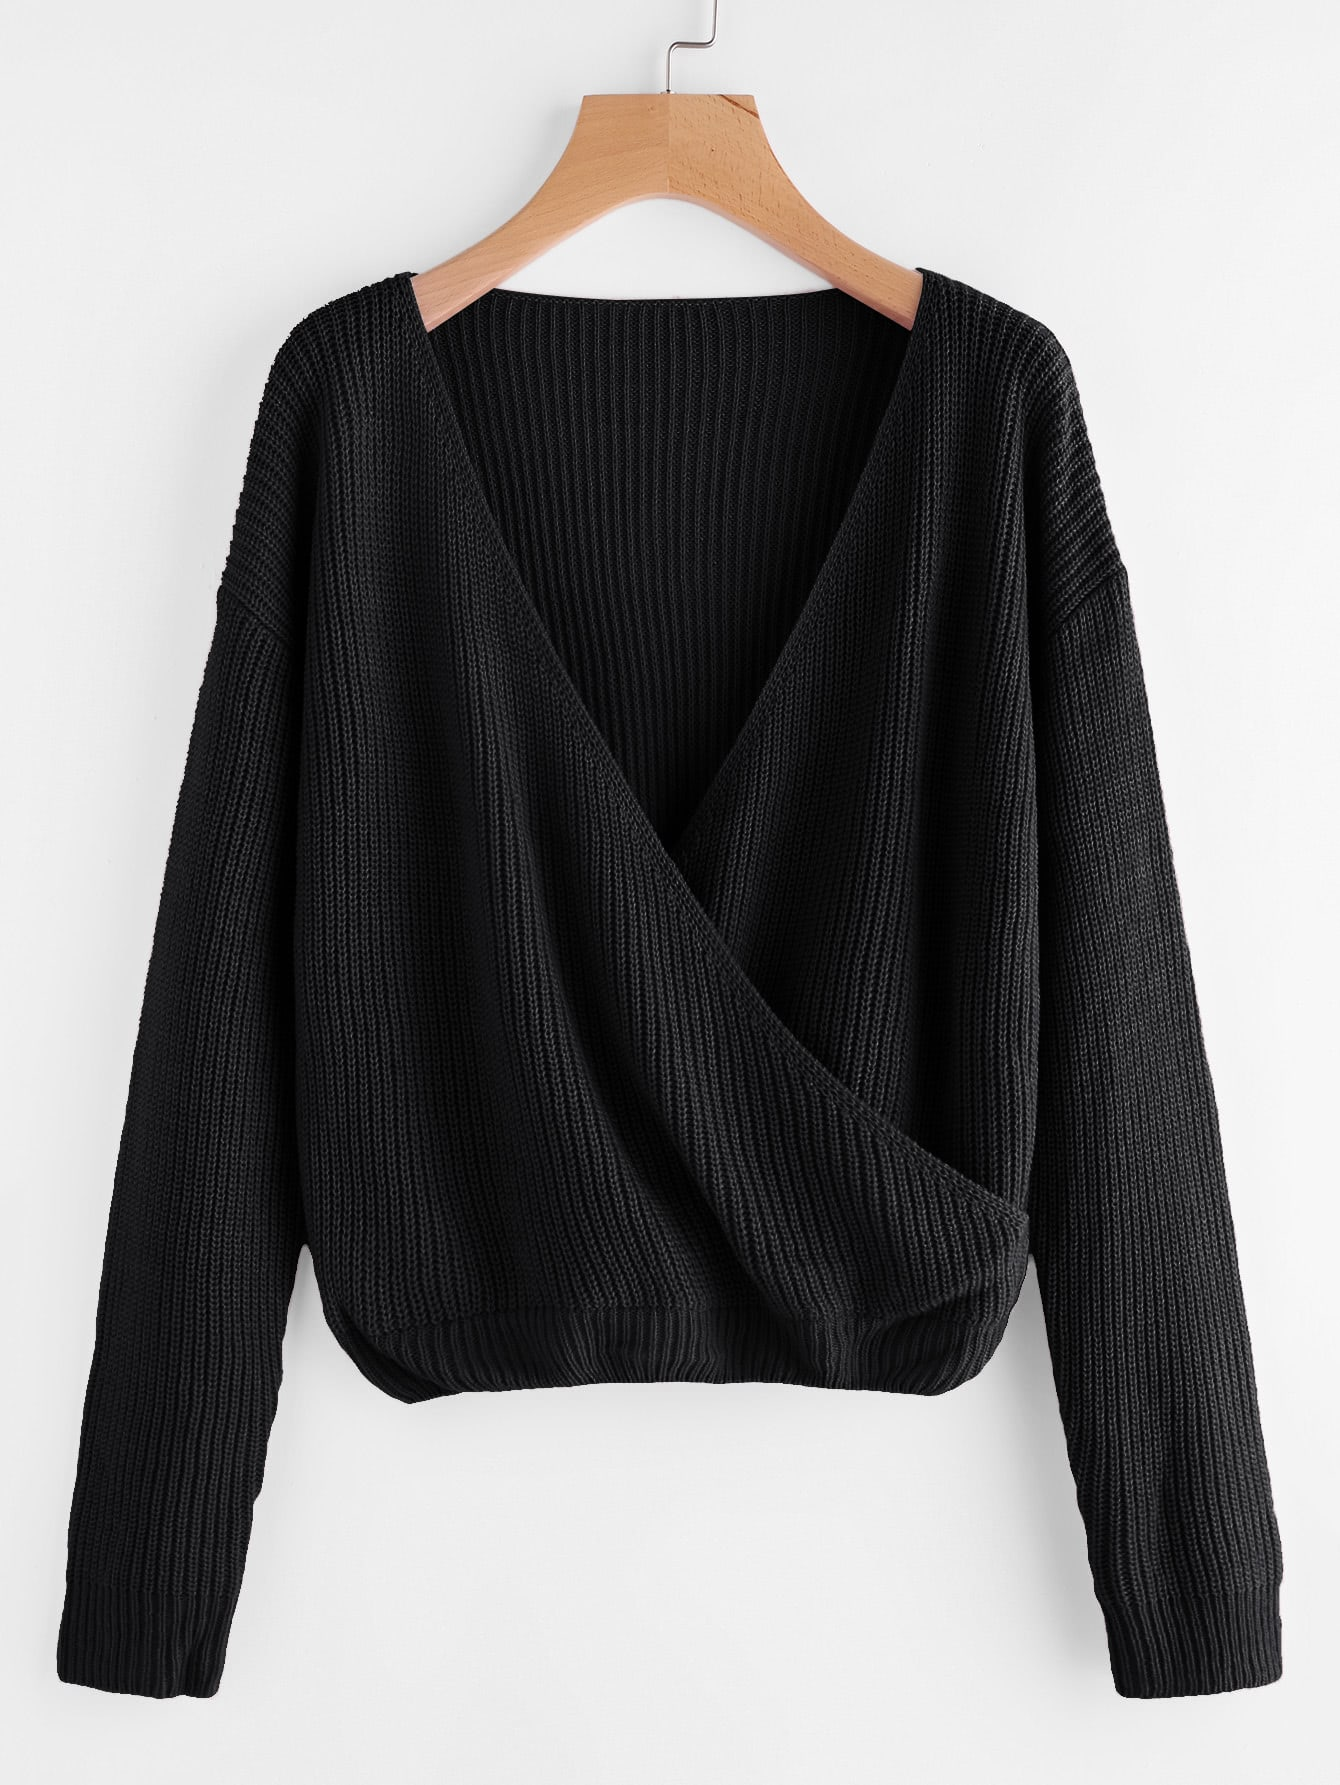 Drop Shoulder Surplice Front Sweater одеяло brigitta 140х205 light лиловый